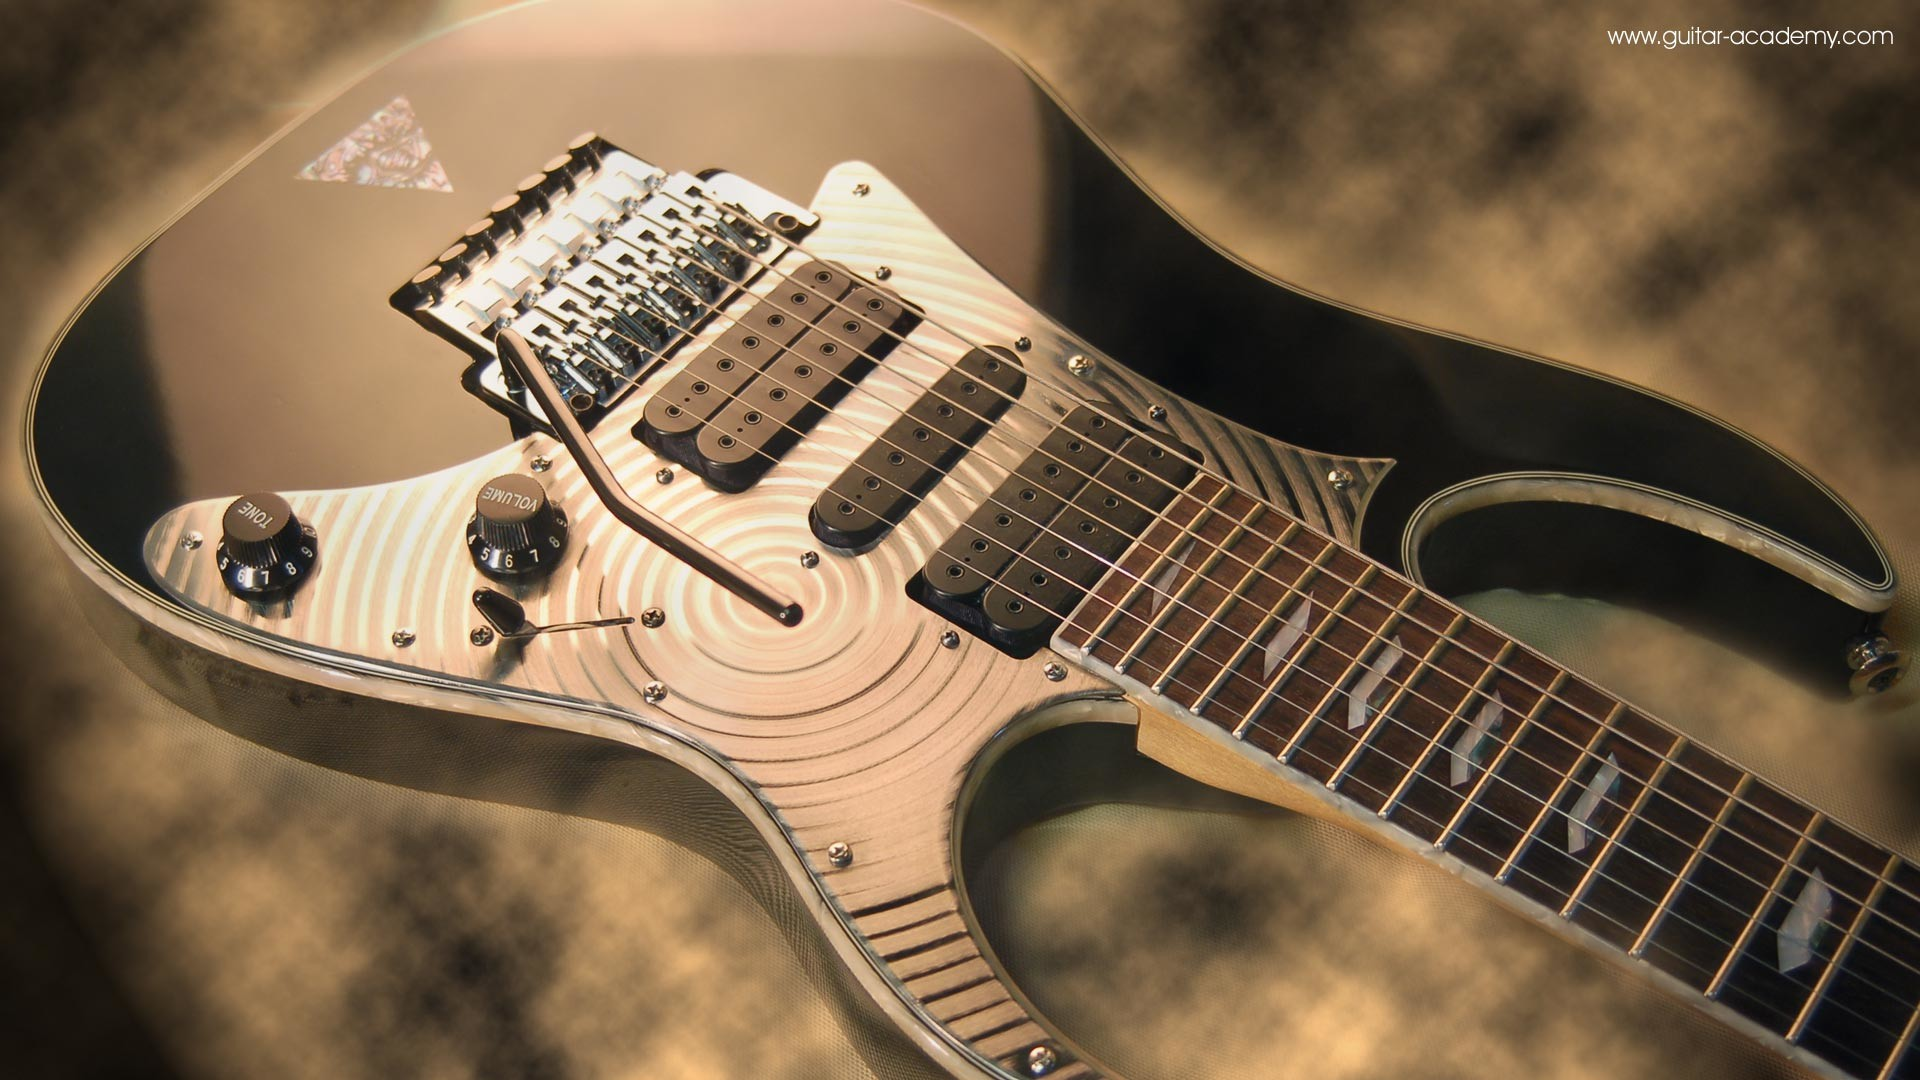 Res: 1920x1080, Guitar wallpaper, Ibanez Universe 7 string guitar body, custom scratchplate